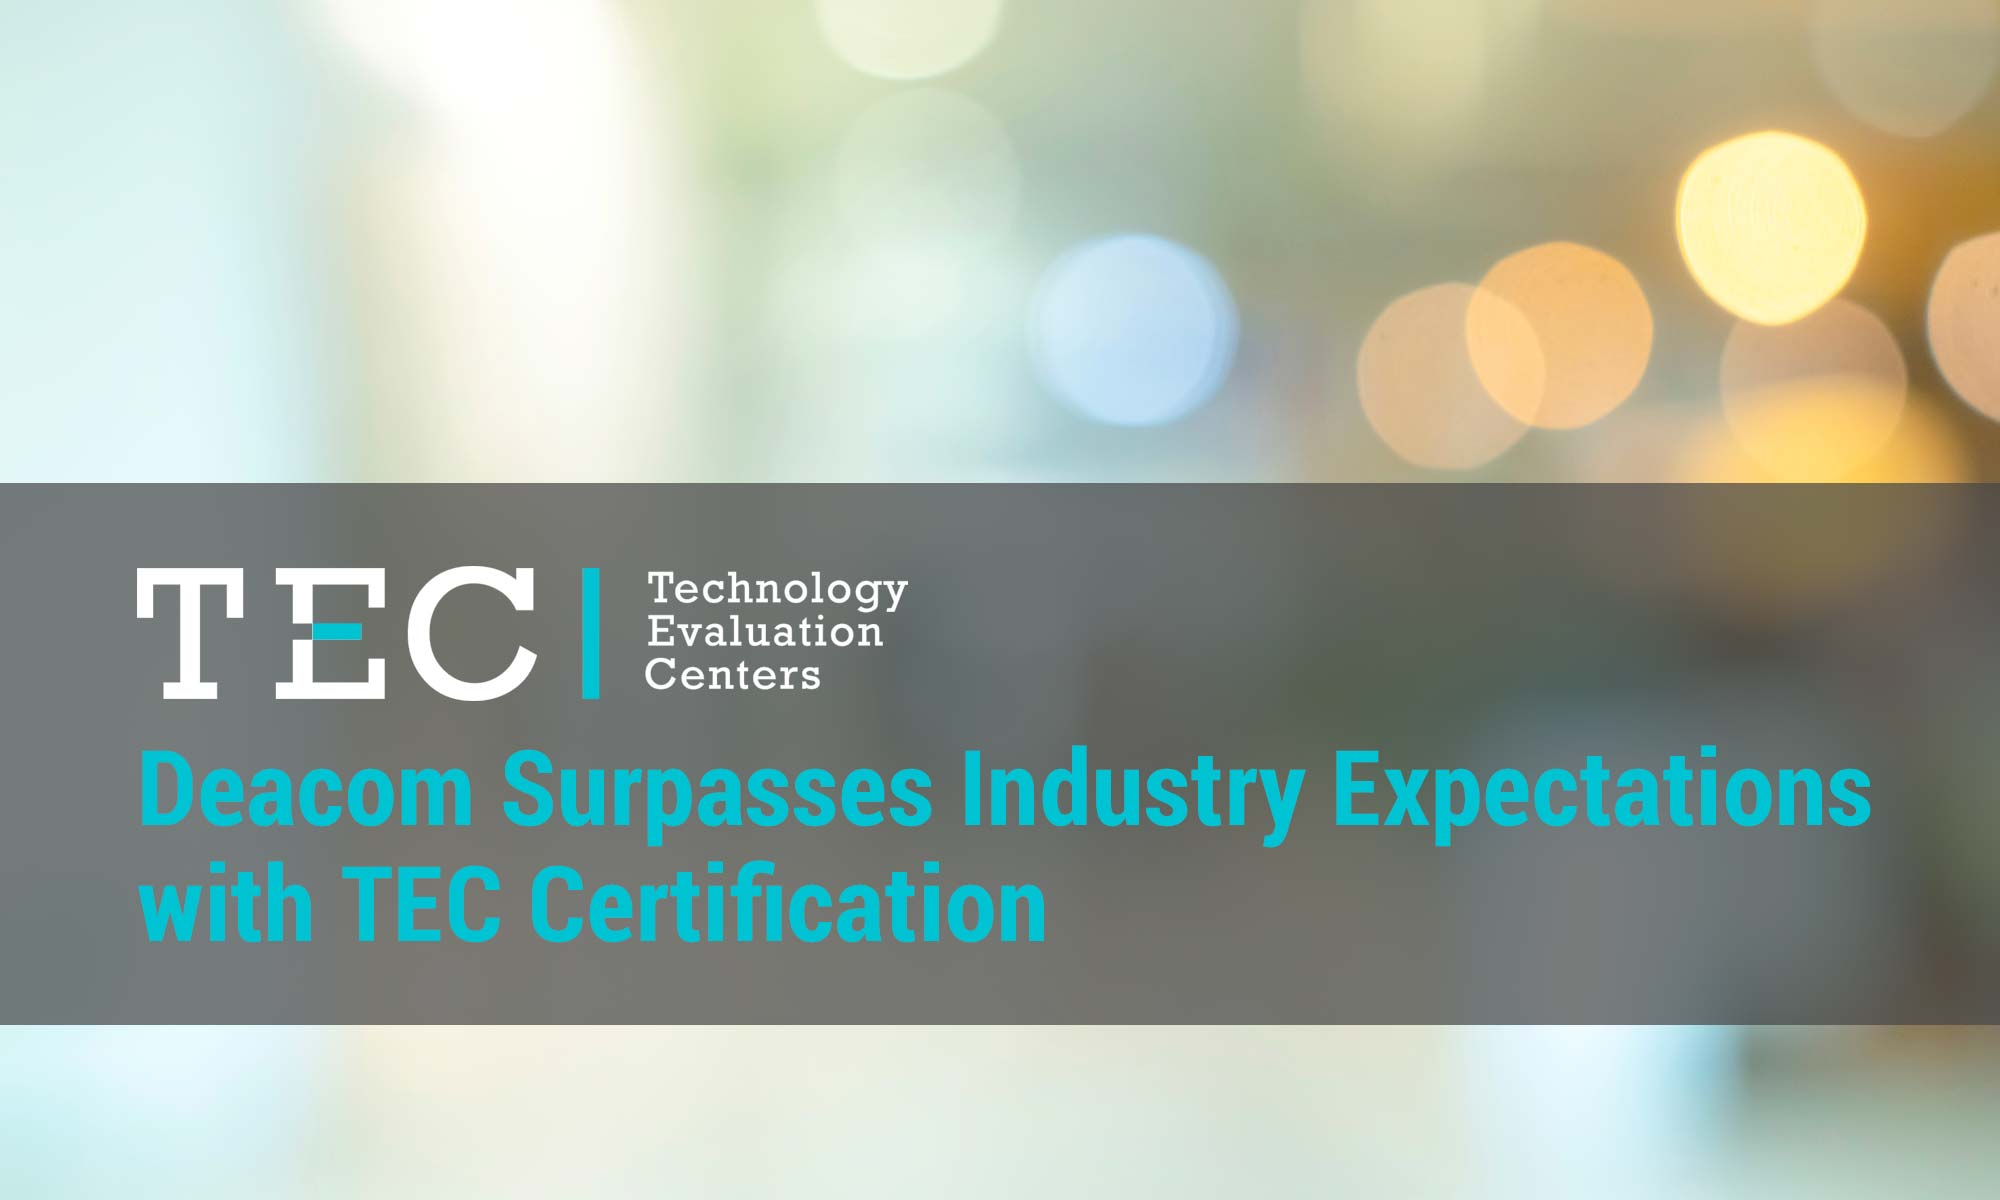 Deacom Surpasses Industry Expectations with TEC Certification